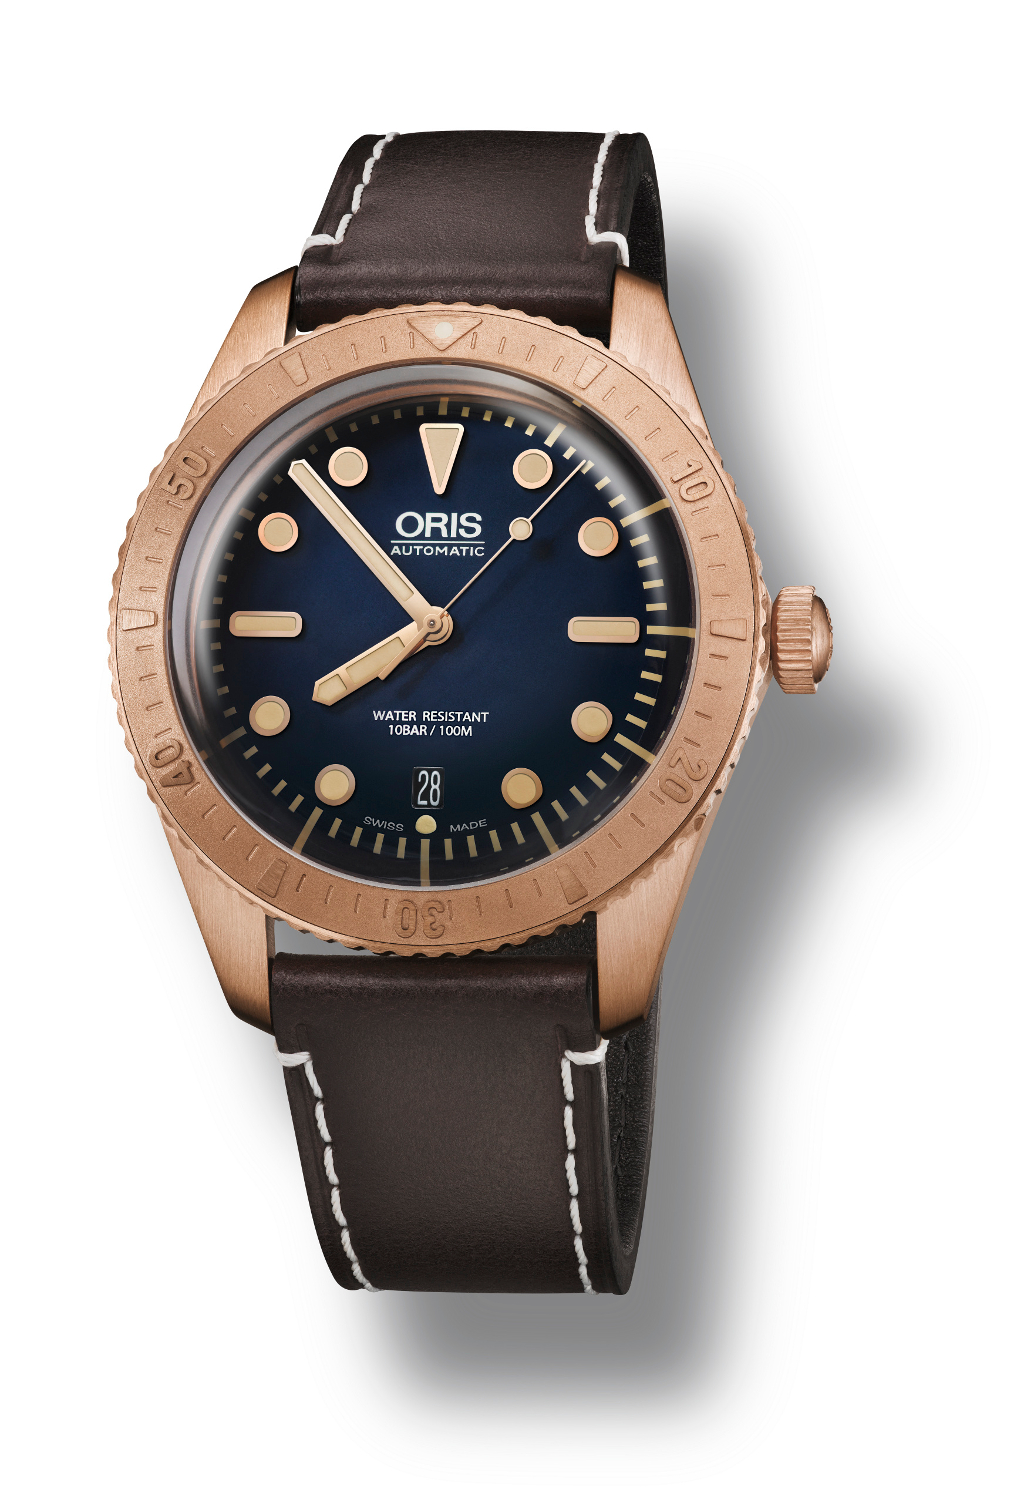 The Oris Carl Brashear Limited Edition. This is the first Oris watch to be cased in Bronze.